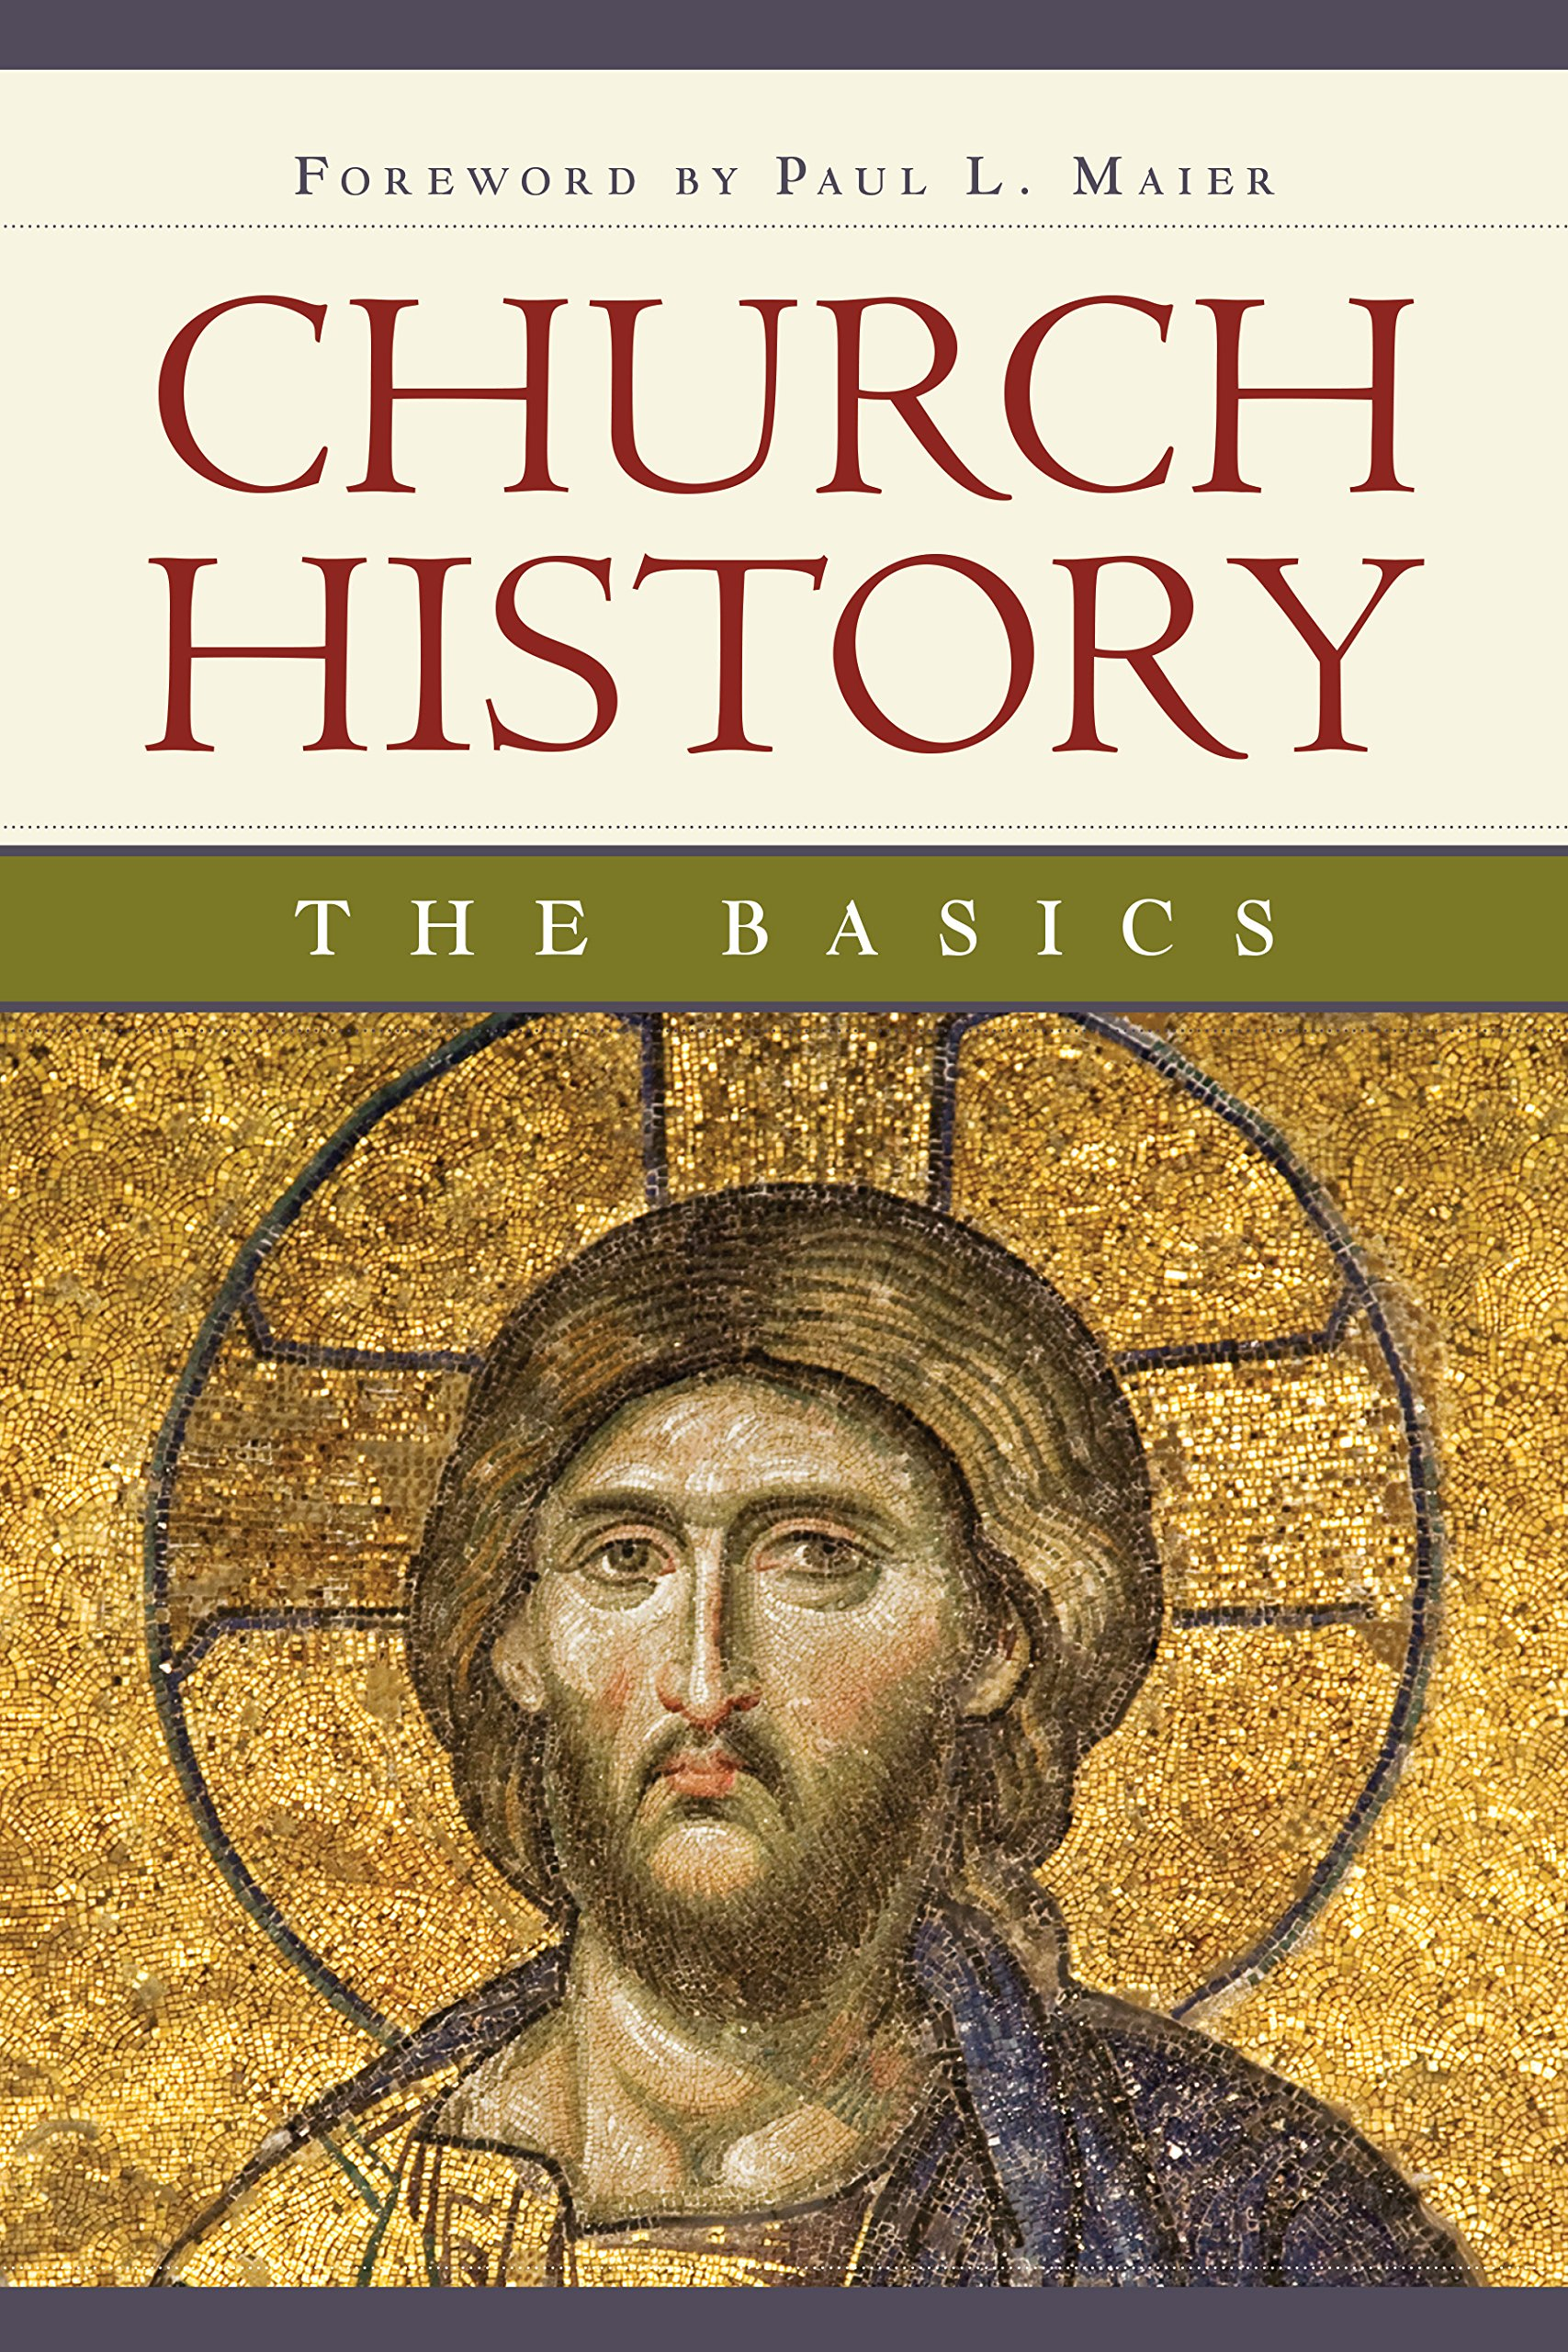 Church History: The Basics: Paul L Maier: 9780758652713: Amazon.com: Books